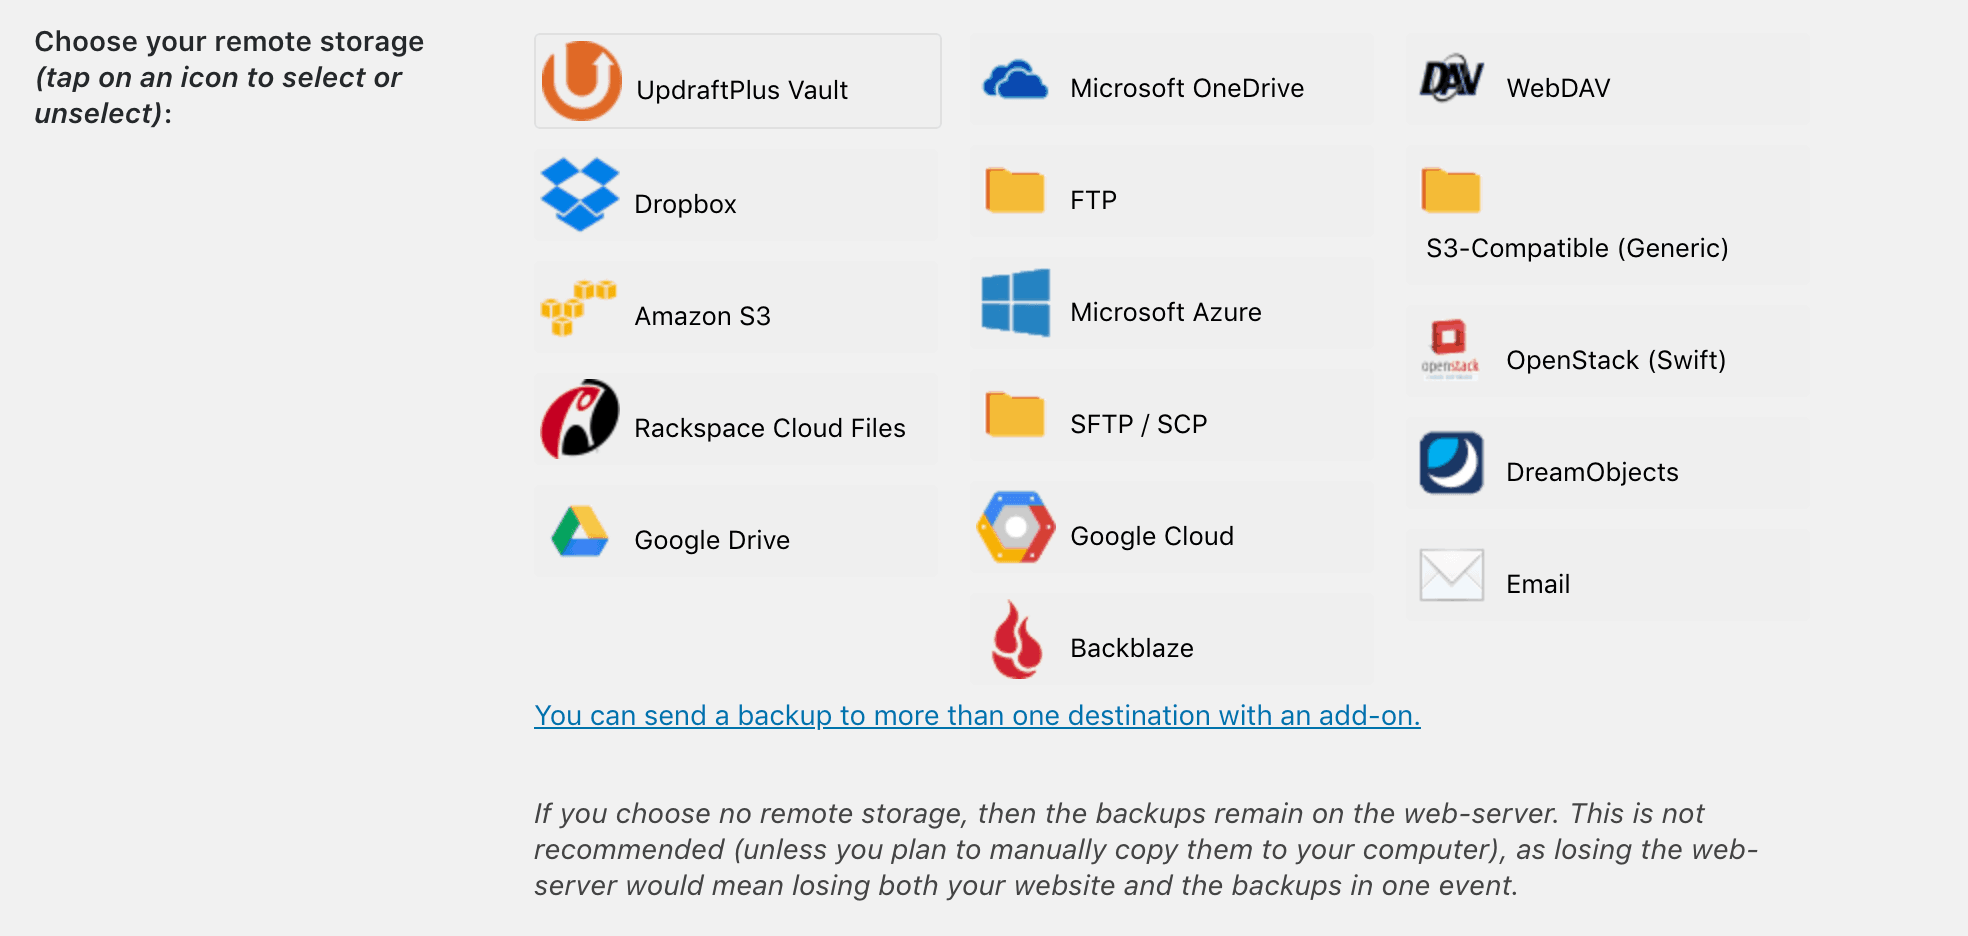 The services you can use to save your backups.